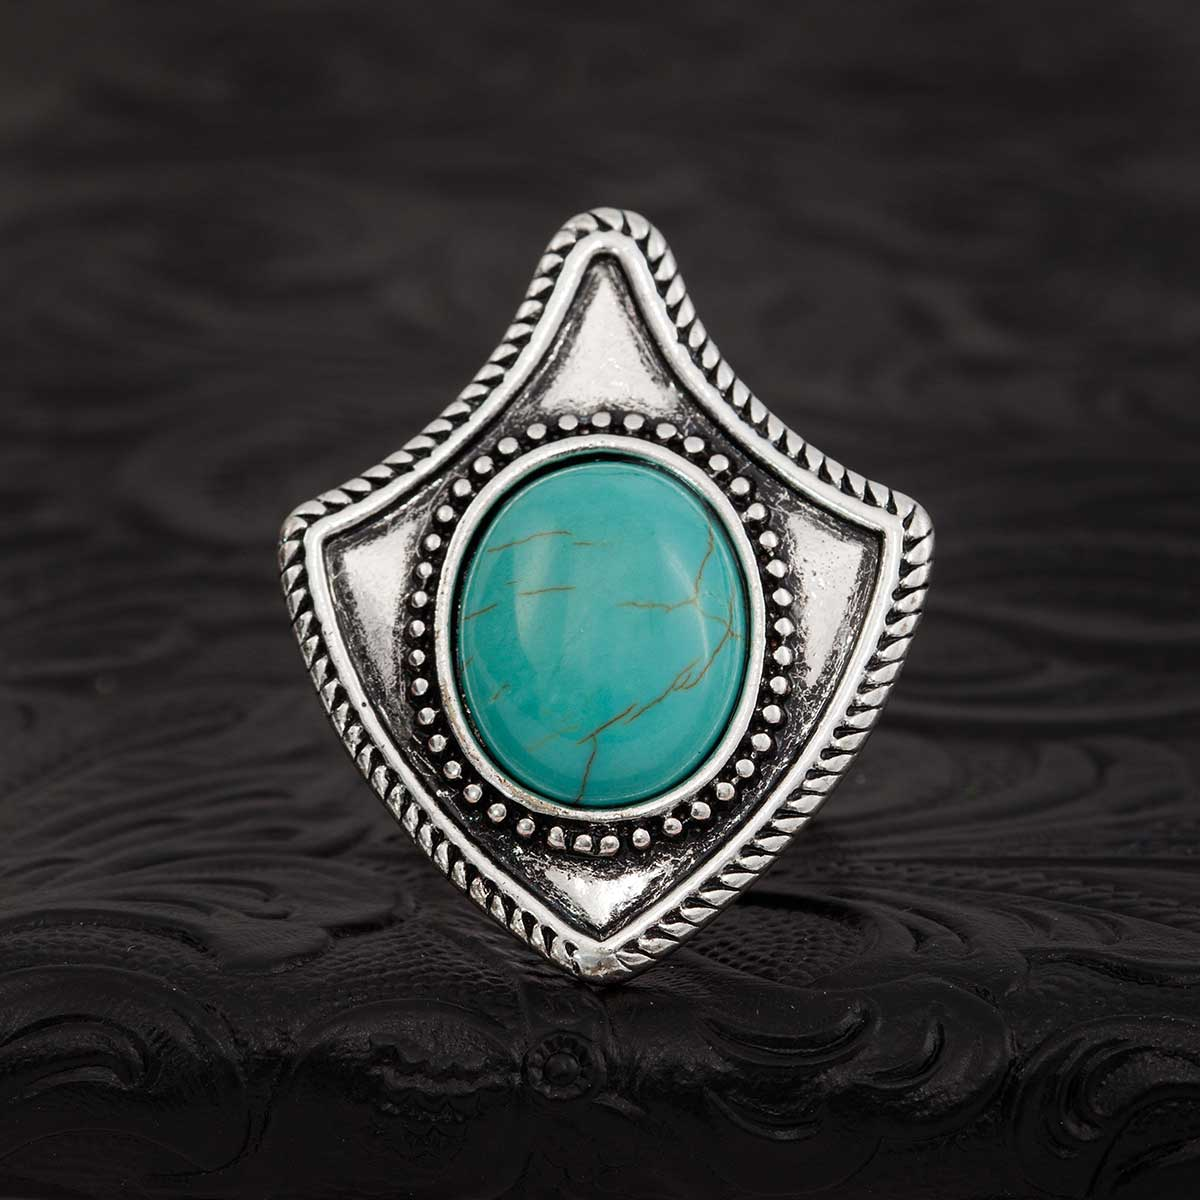 TURQUOISE ARROWHEAD ADJUSTABLE RING